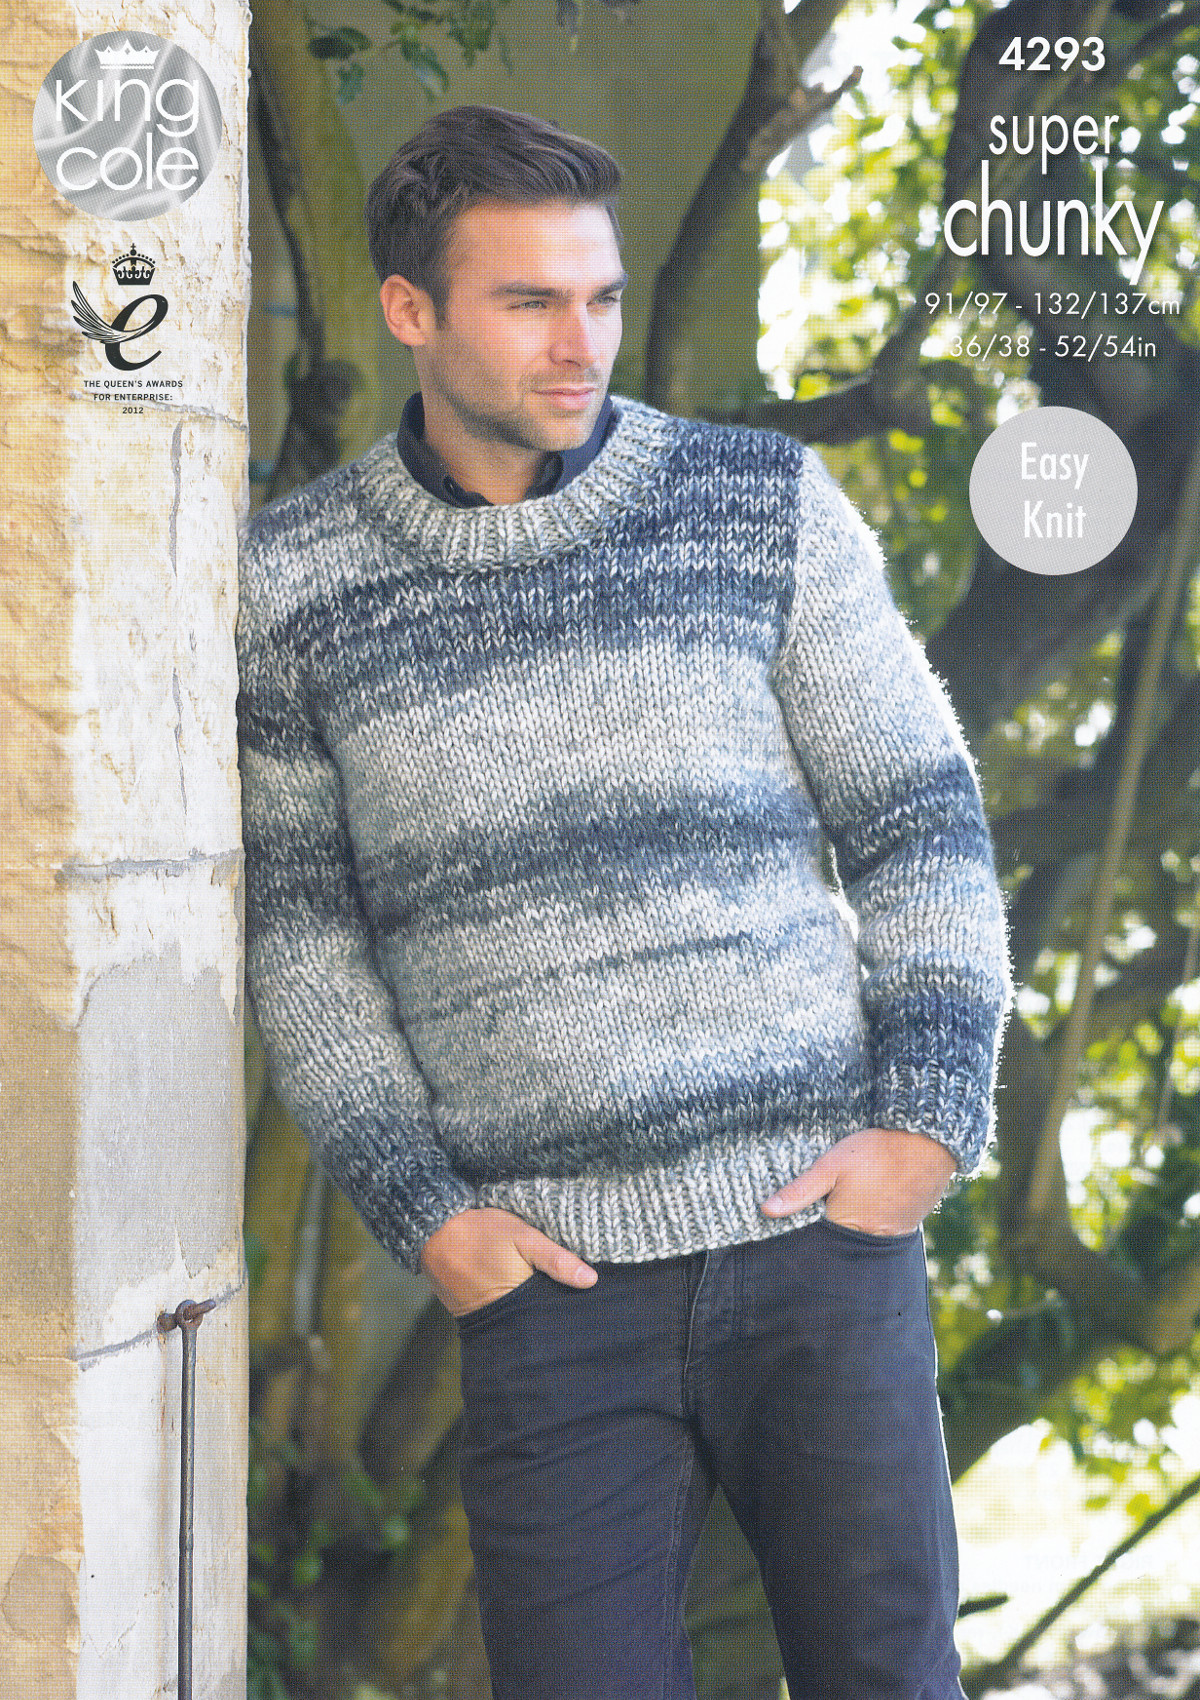 4bed7f7c3 Item Description. This easy knit King Cole super chunky knitting pattern  leaflet 4293 will instruct you on how to create a men s round neck sweater  and V ...